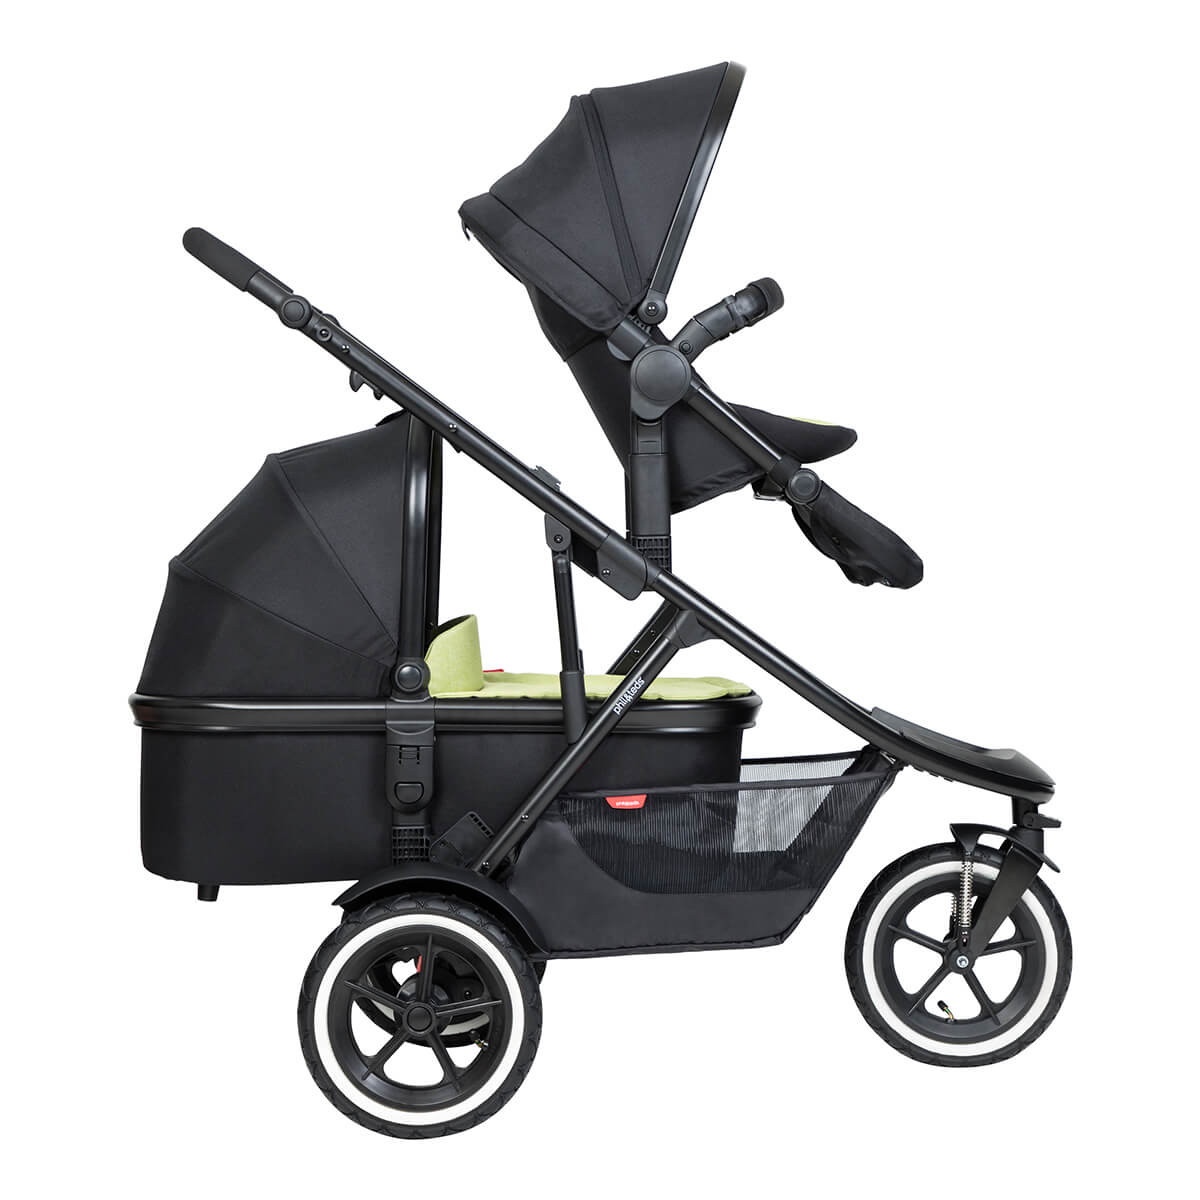 https://cdn.accentuate.io/4546157740137/19119322726505/philteds-sport-buggy-with-double-kit-extended-clip-and-snug-carrycot-side-view-v1625778273804.jpg?1200x1200